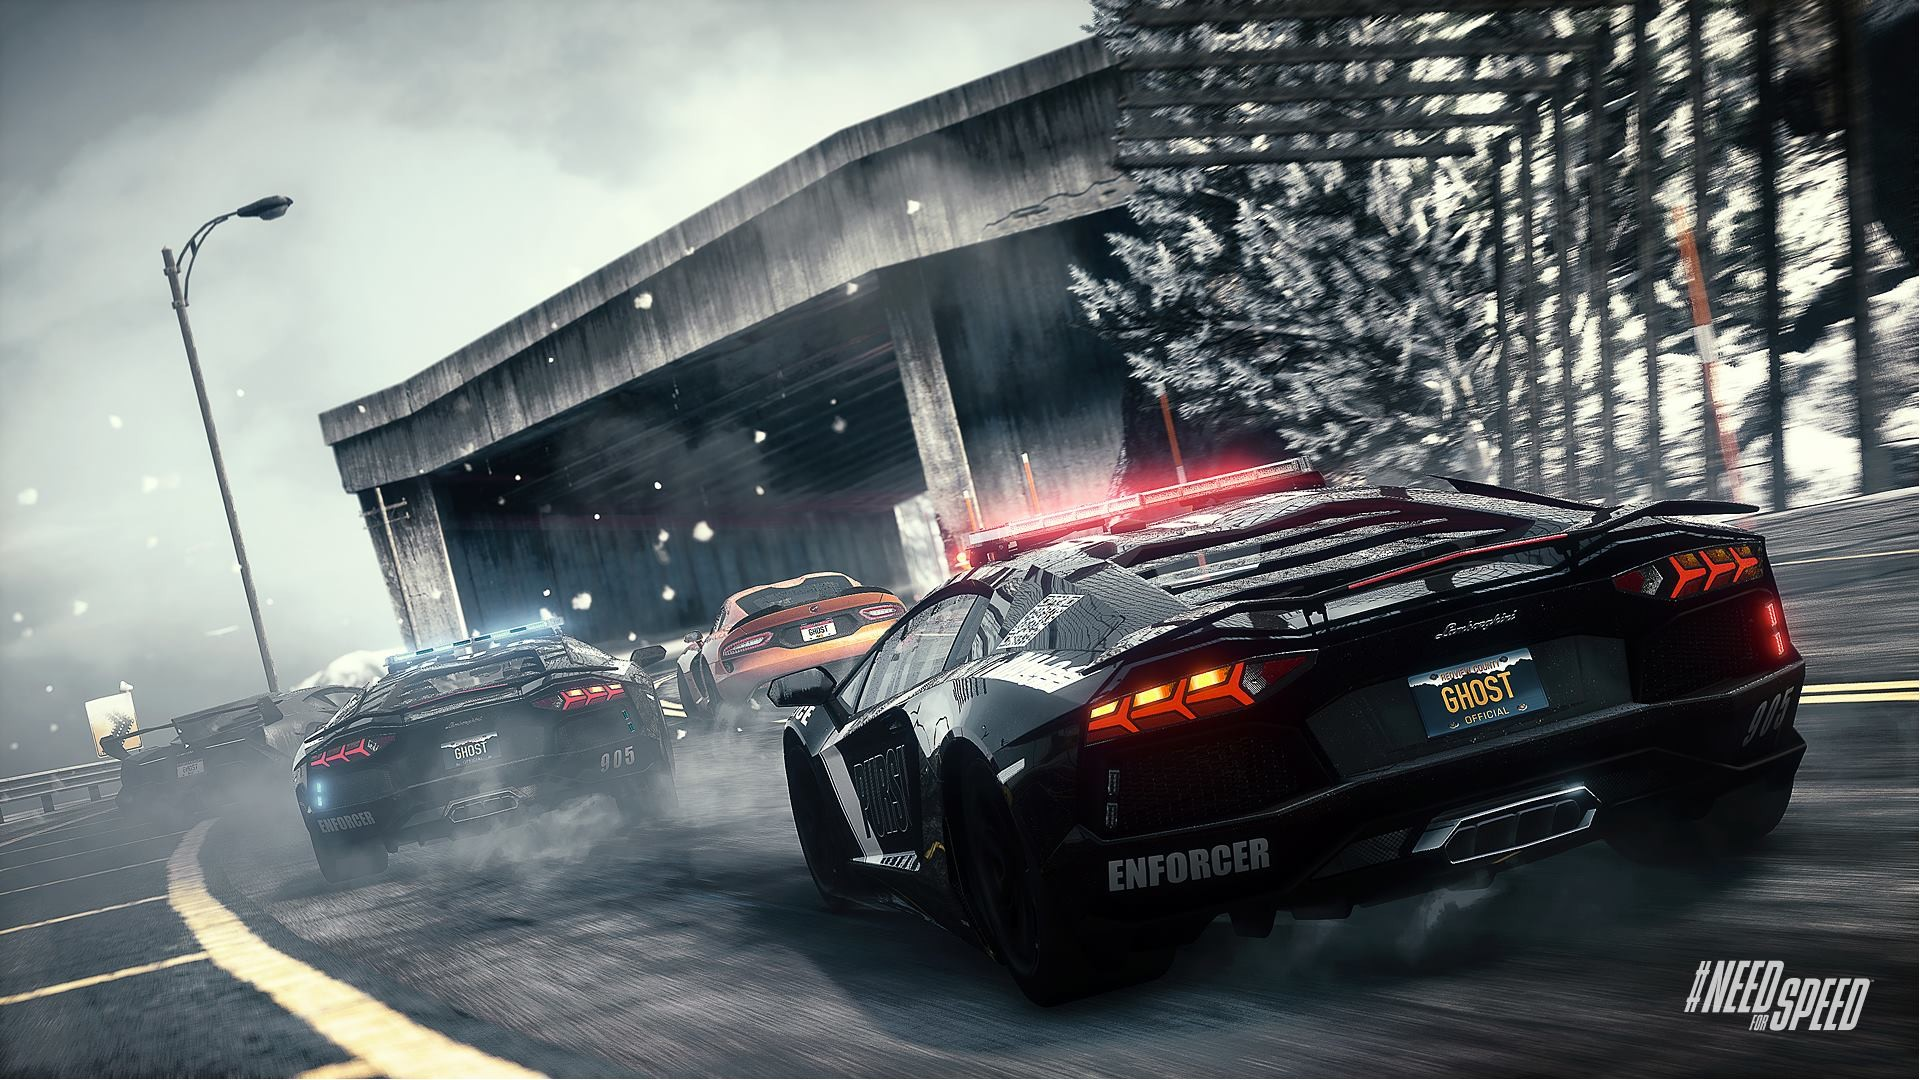 1920x1080 Best 25+ Need for speed rivals ideas only on Pinterest | Bike rivals, Need  for speed and Nfs need for speed